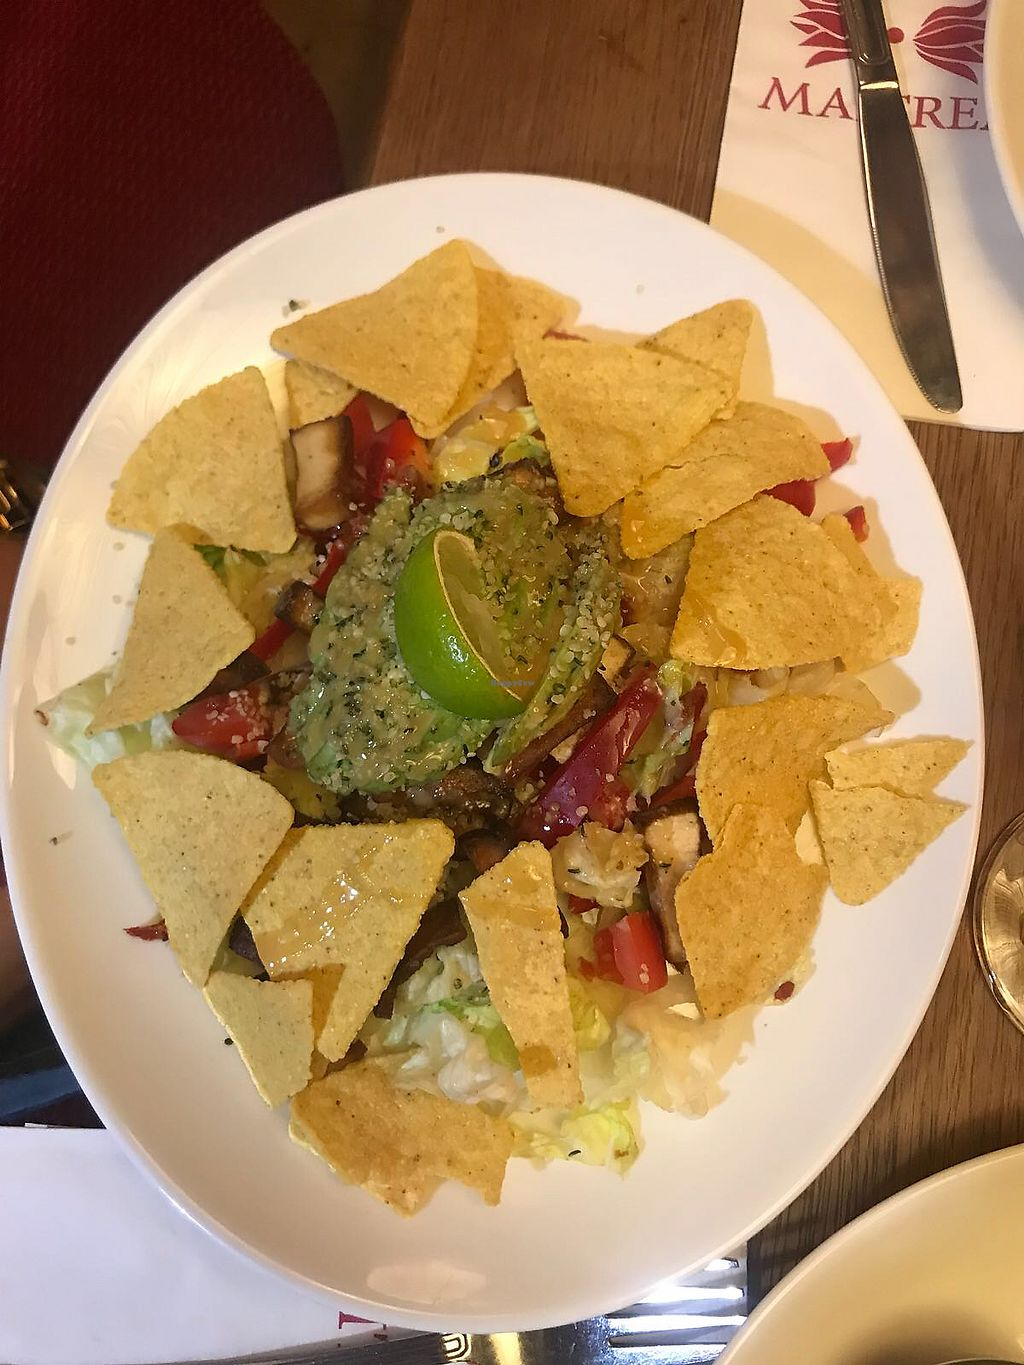 """Photo of Maitrea  by <a href=""""/members/profile/VeraP.V."""">VeraP.V.</a> <br/>Great salad with tofu <br/> April 7, 2018  - <a href='/contact/abuse/image/17585/381920'>Report</a>"""